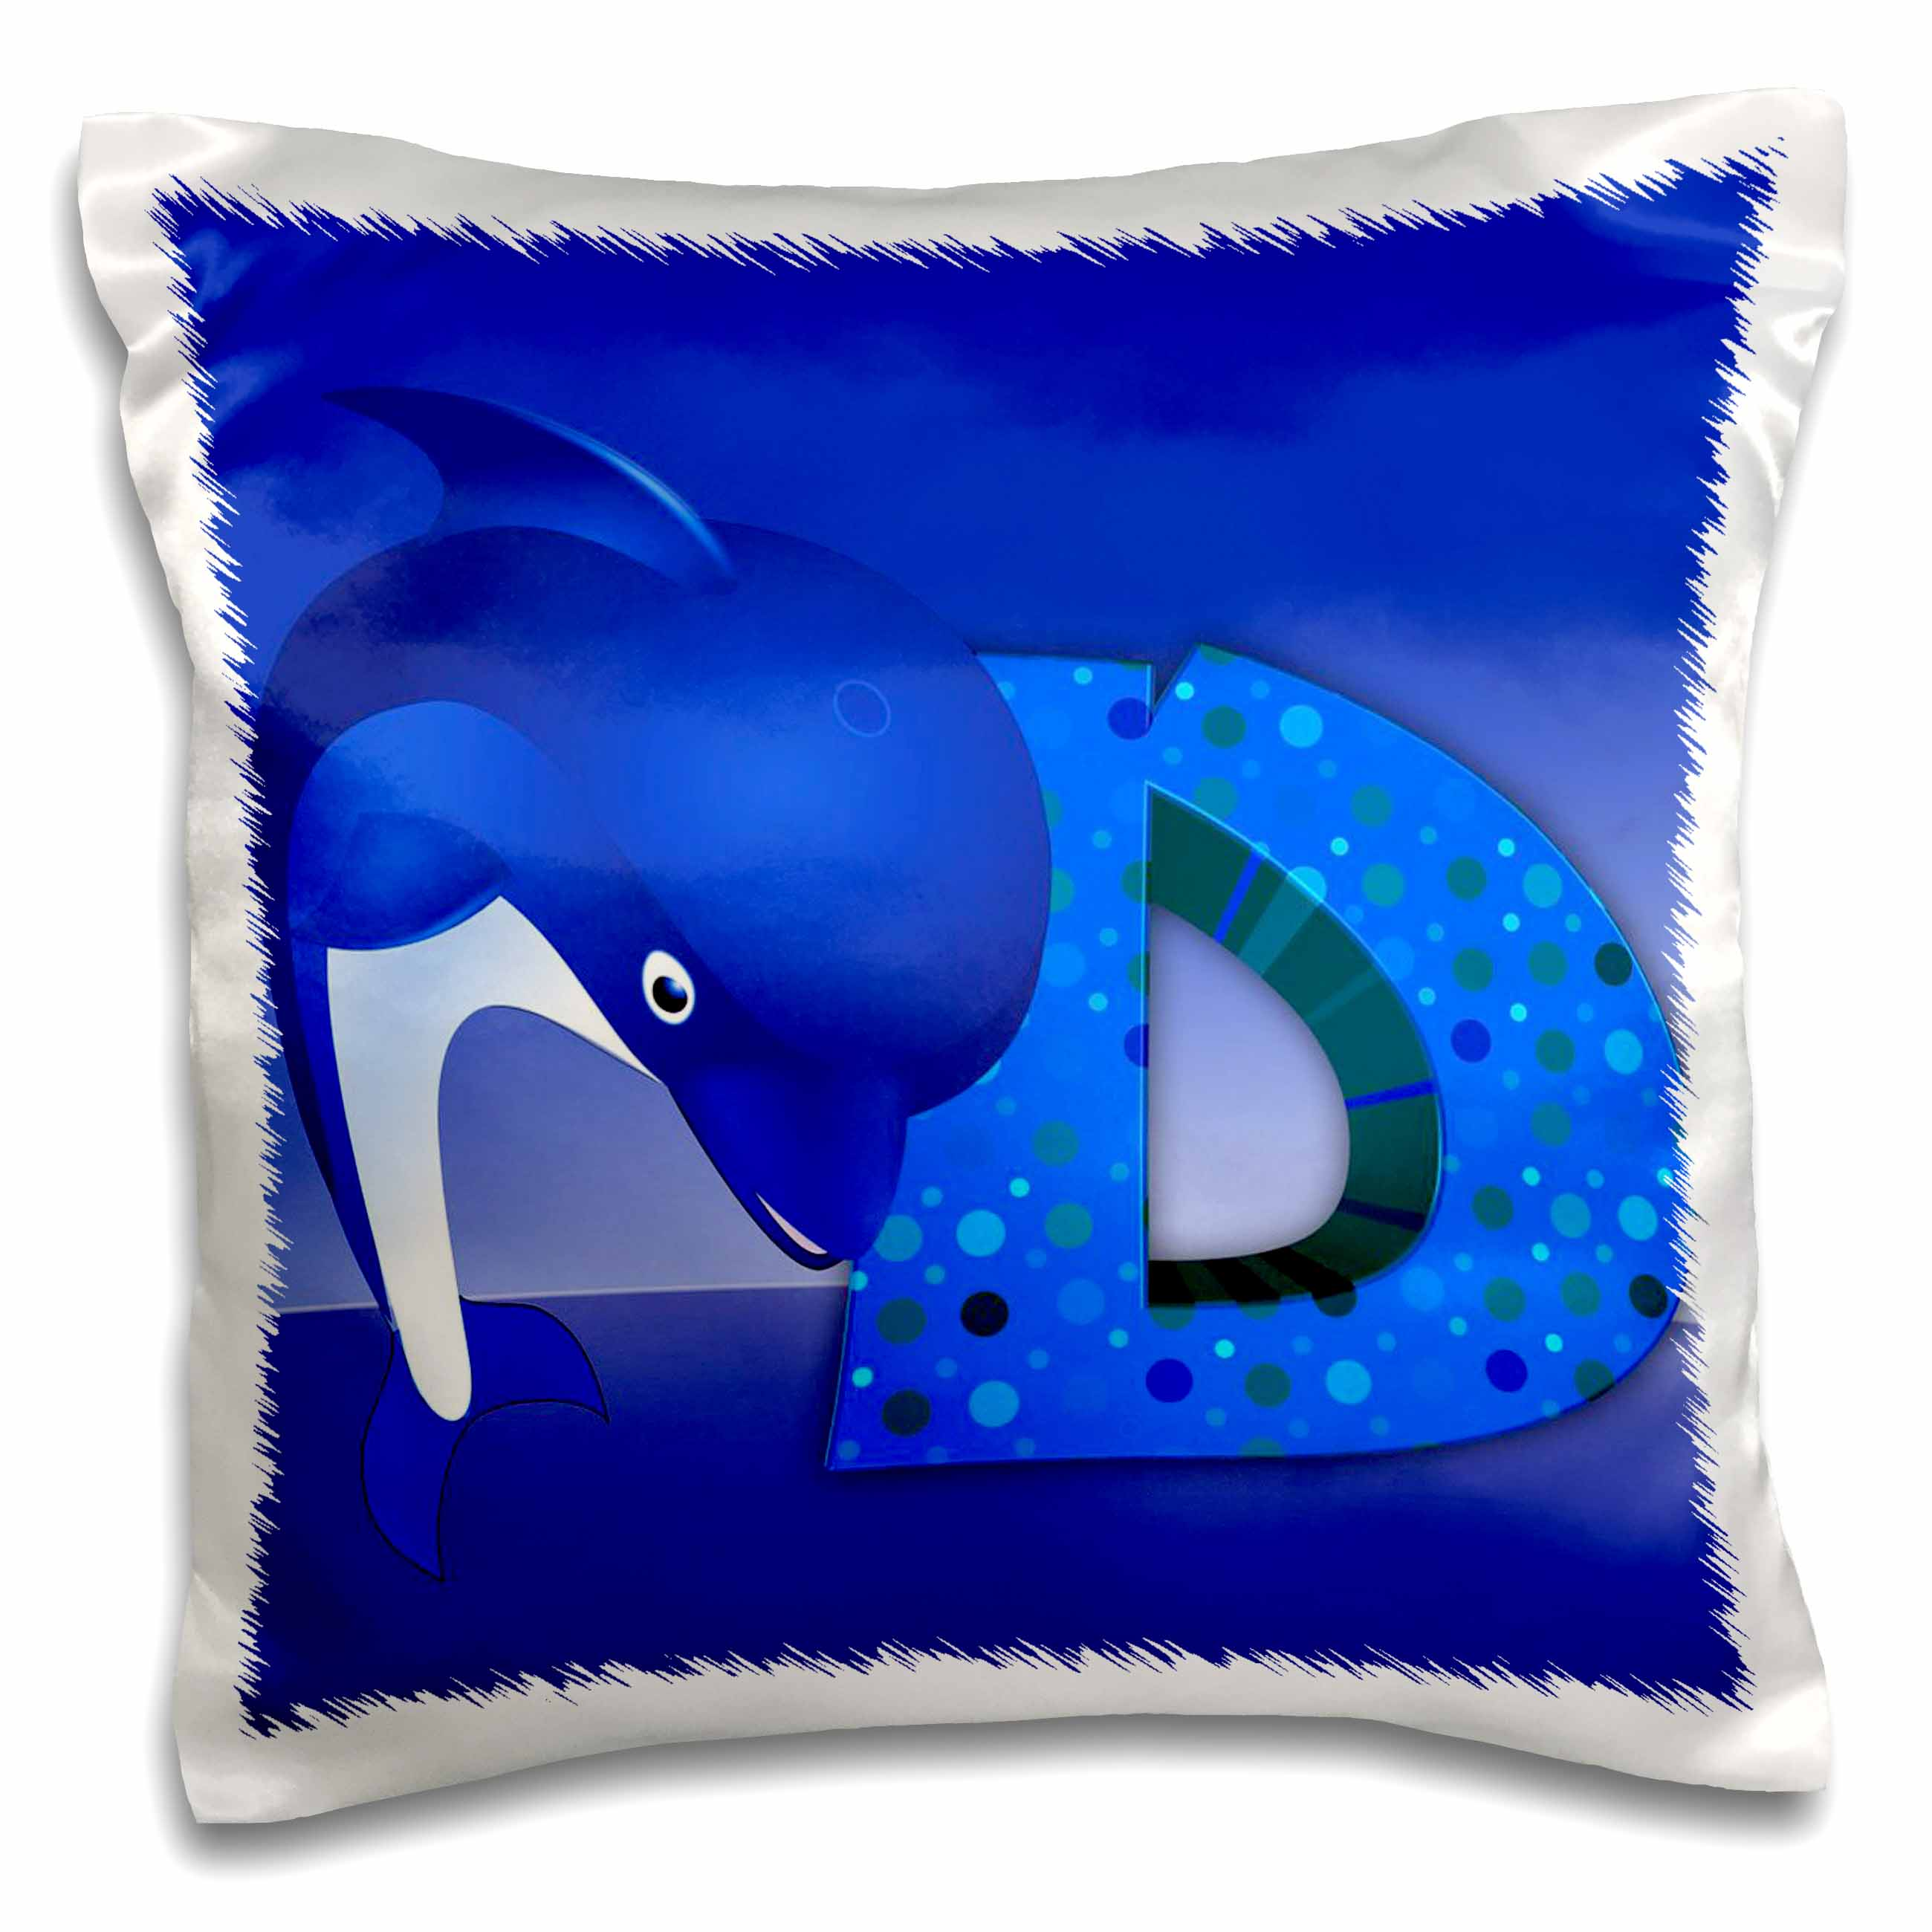 3dRose D for Dolphin Alphabet, Pillow Case, 16 by 16-inch